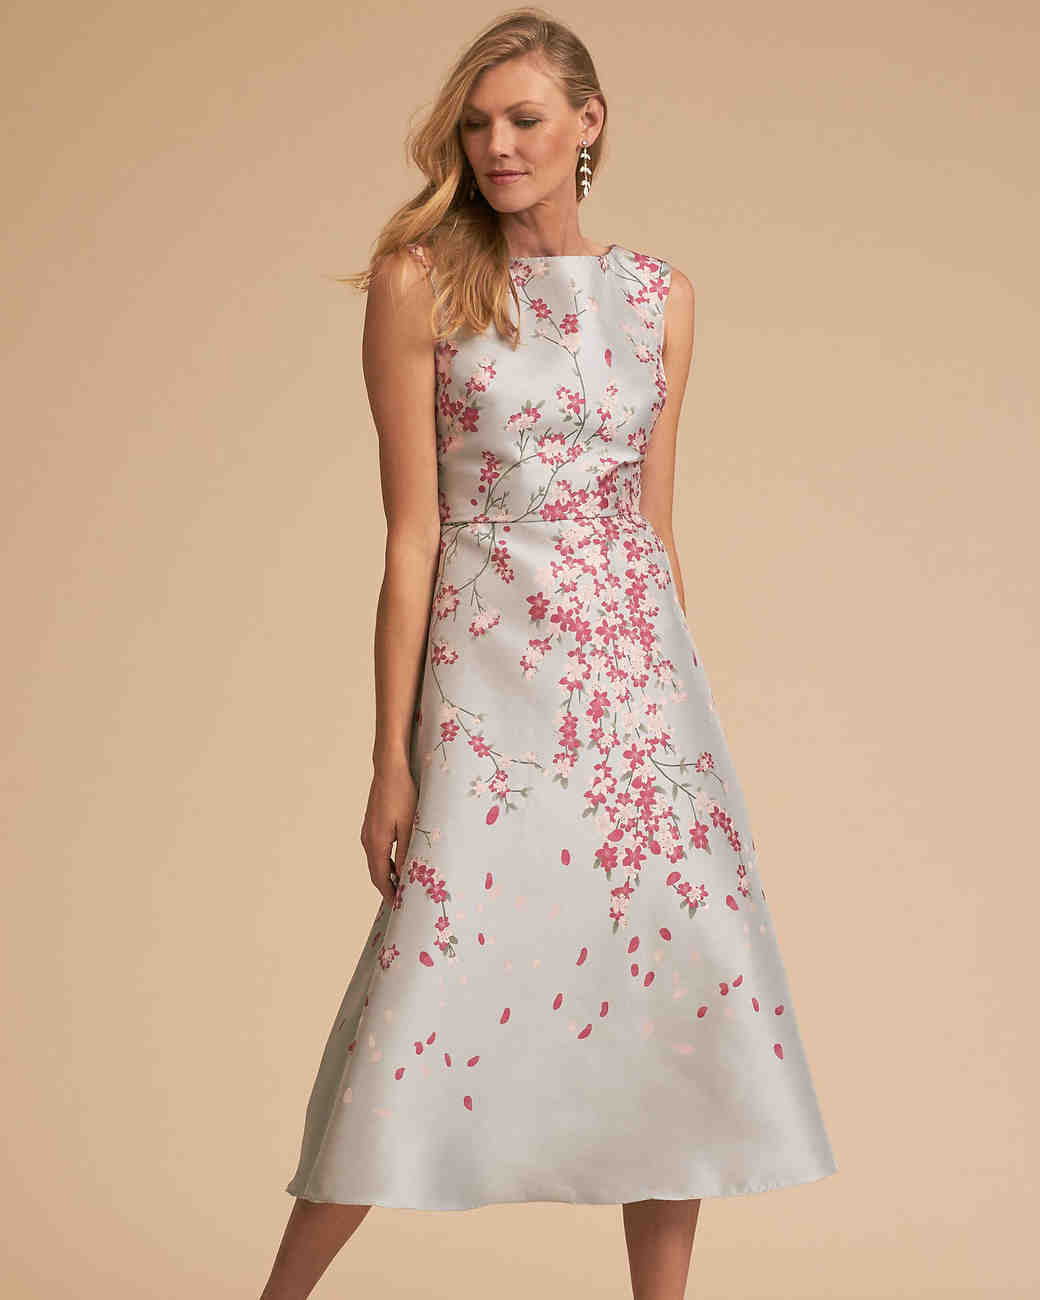 0de6a37204c 30 Floral Dresses for the Mothers of the Bride and Groom